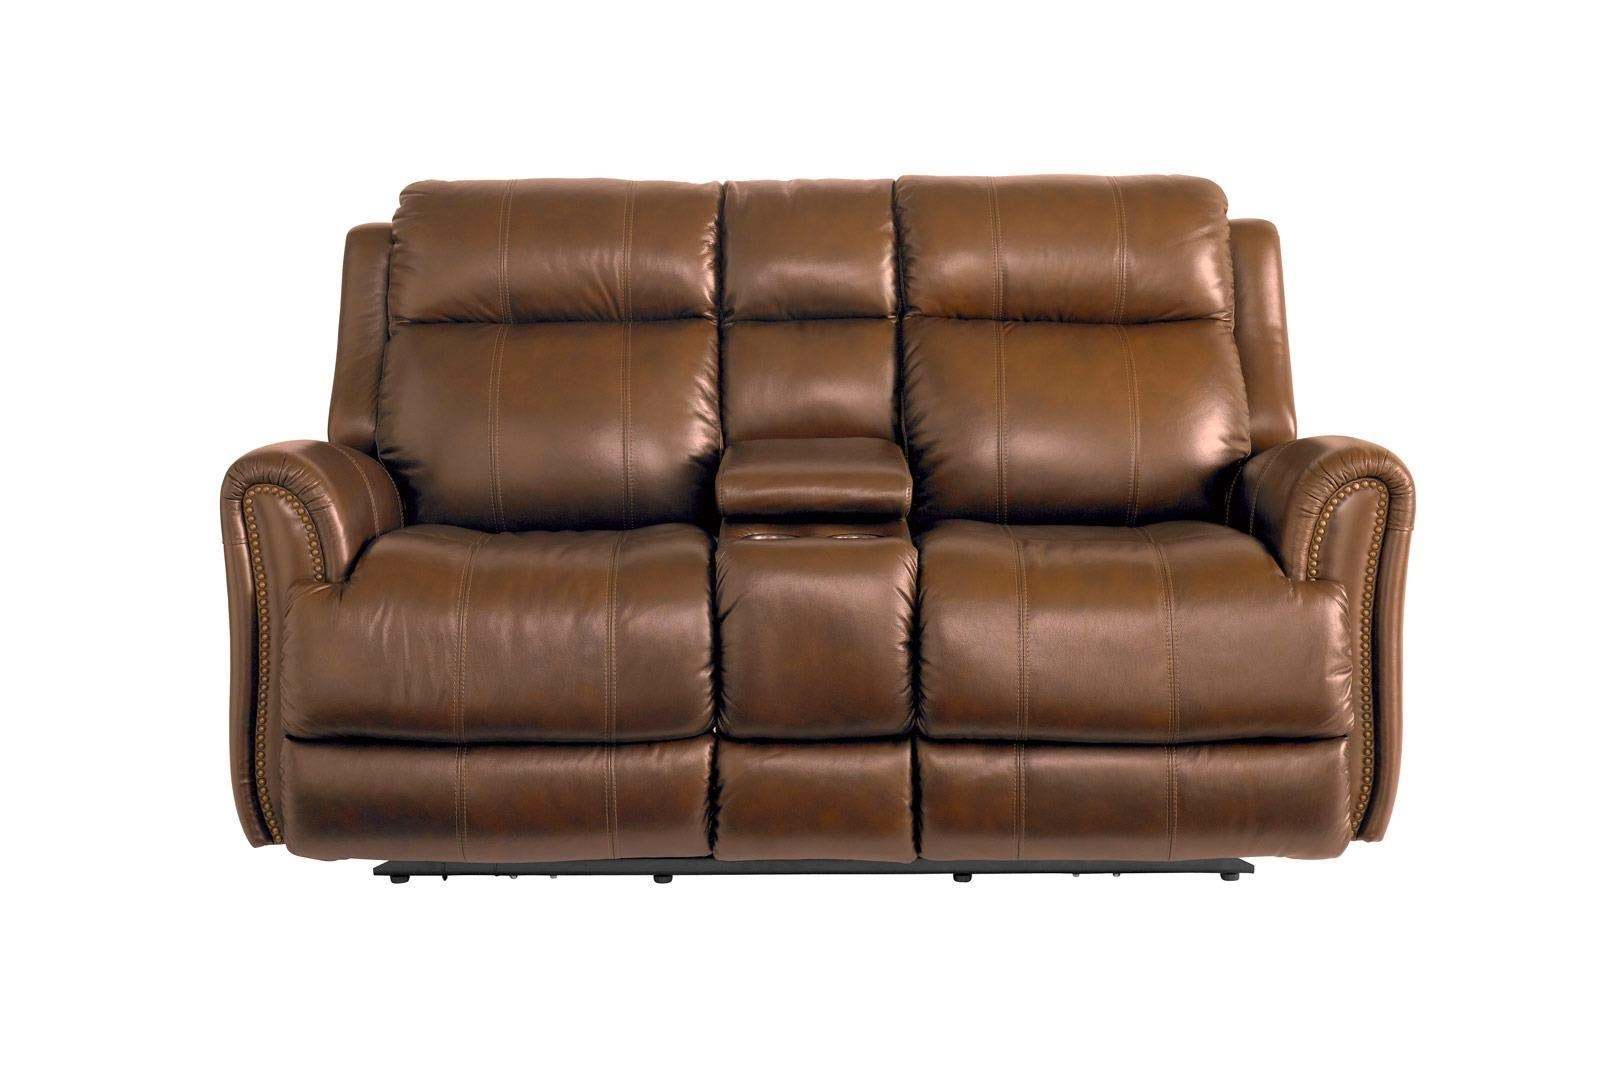 Reclining loveseat with console leather trendy recliners chairs u sofa leather reclining Reclining loveseat with center console